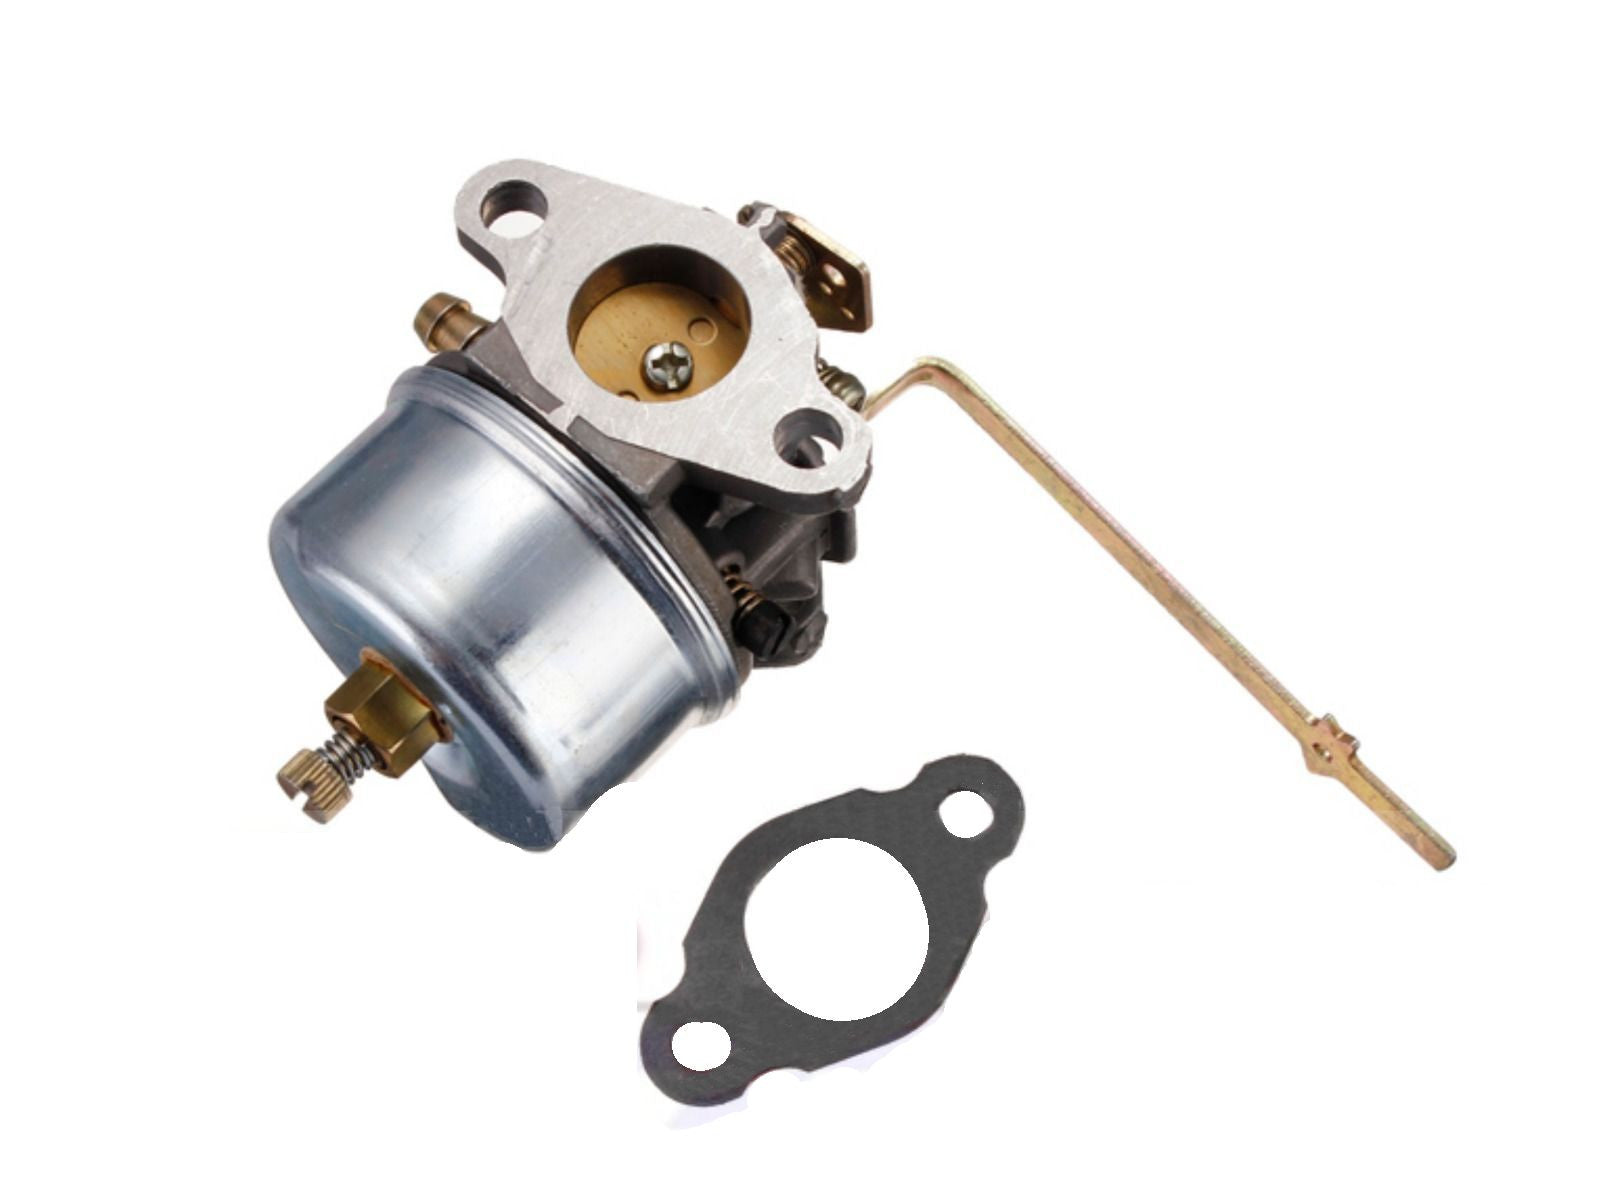 Carburetor for Tecumseh 632615 632208 632589 fits H30 H35 Engines - AE-Power